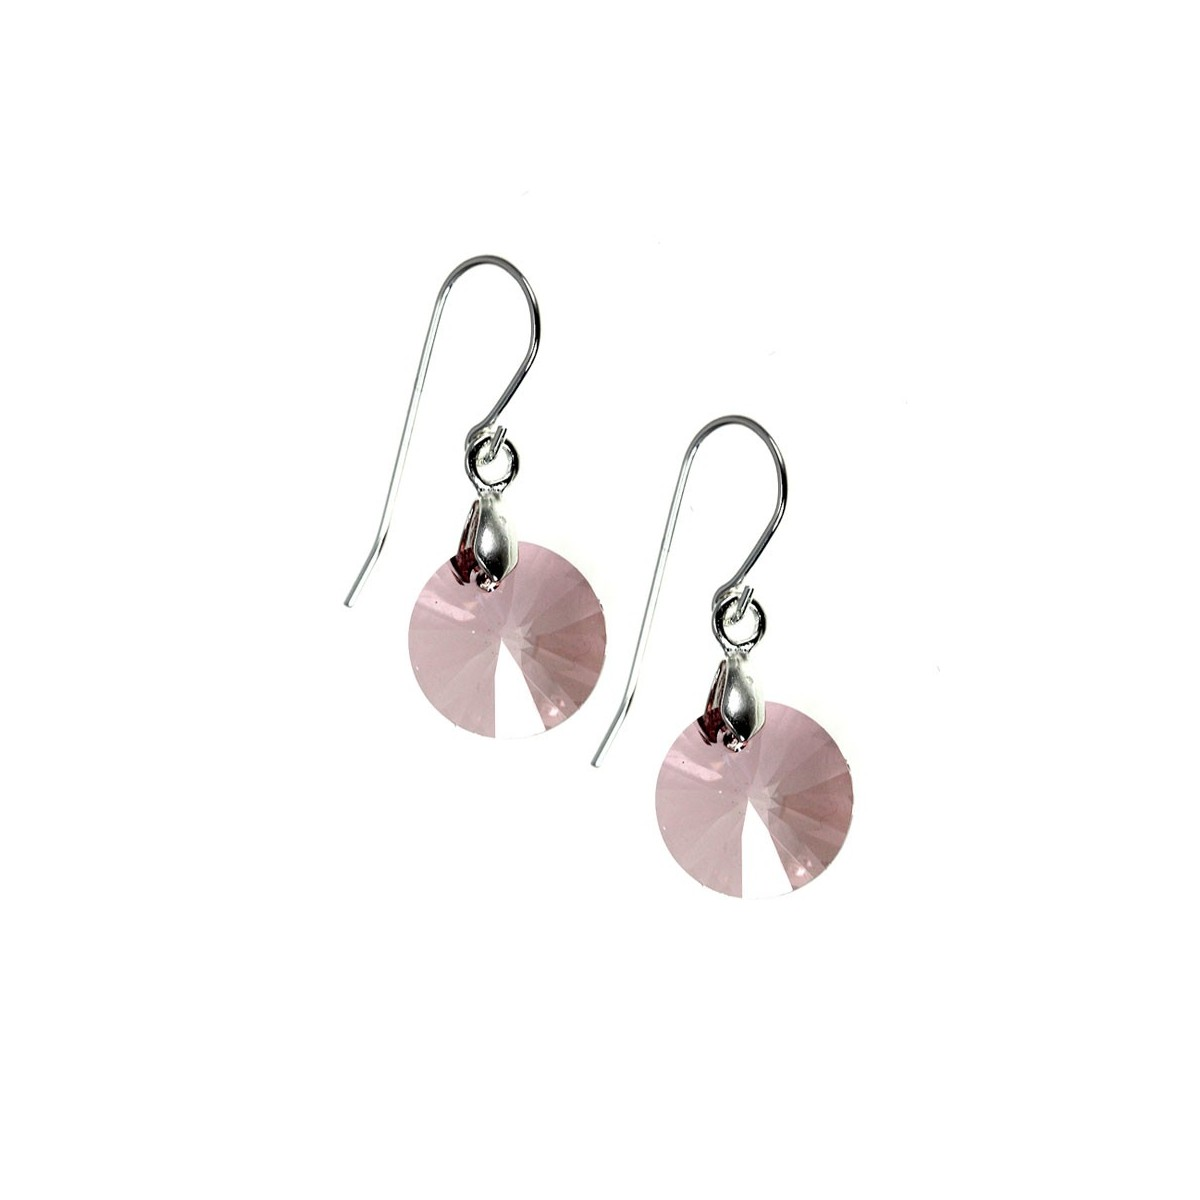 Boucles d'oreilles So Charm ornées d'un cristal rose made with crystal from Swarovski